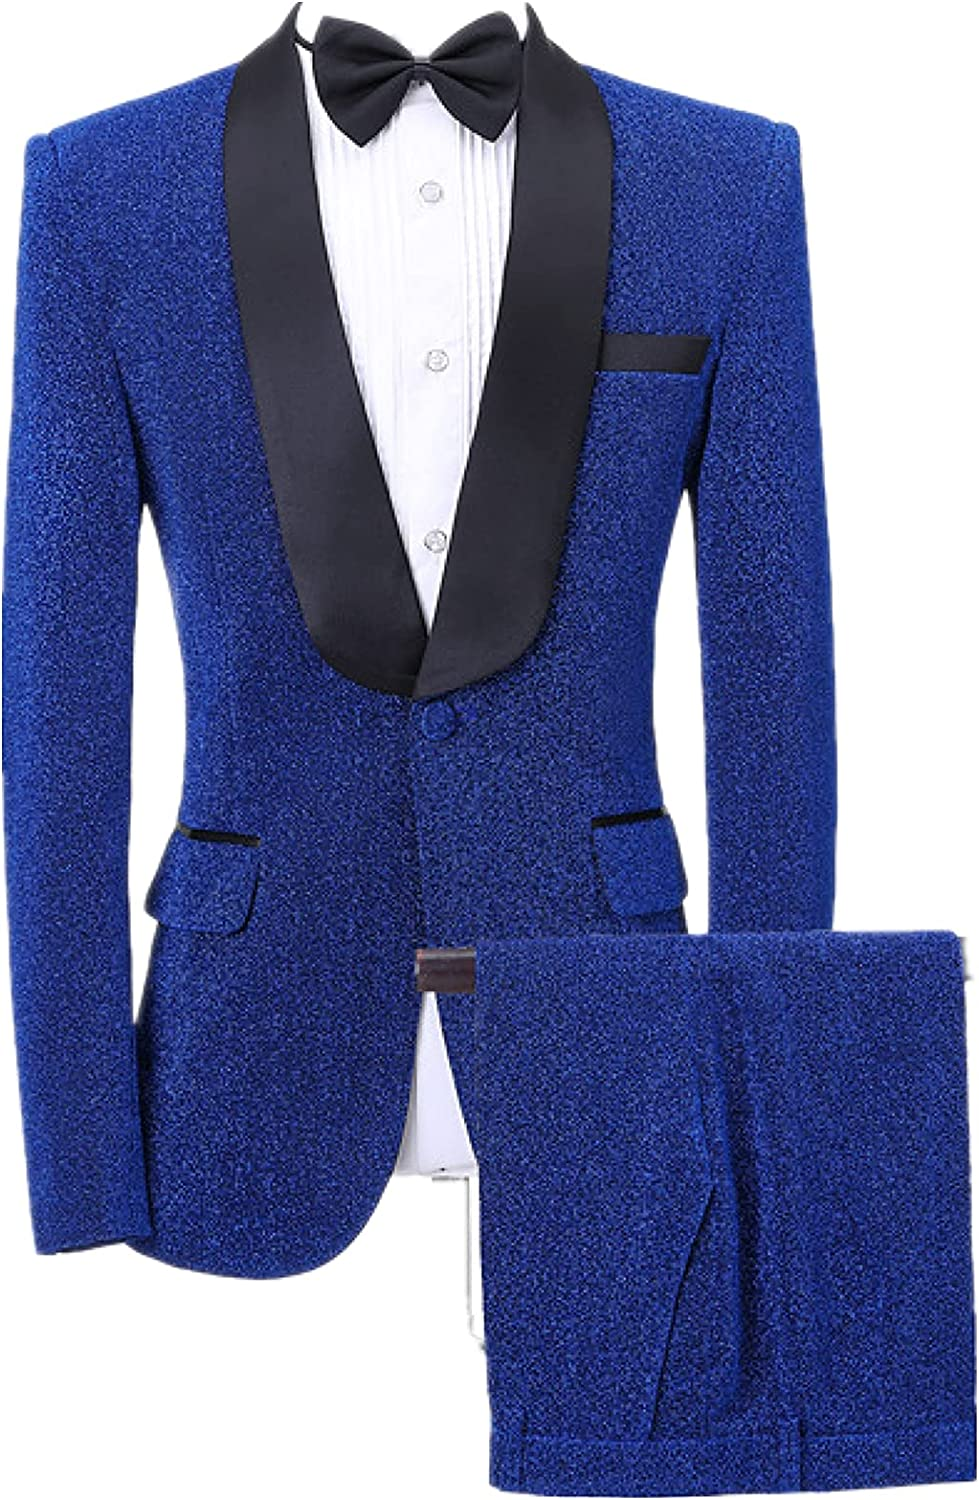 Men's Casual Blazer Jacket Lapel Business Jacket Single Row one Button for Dinners Dance Parties